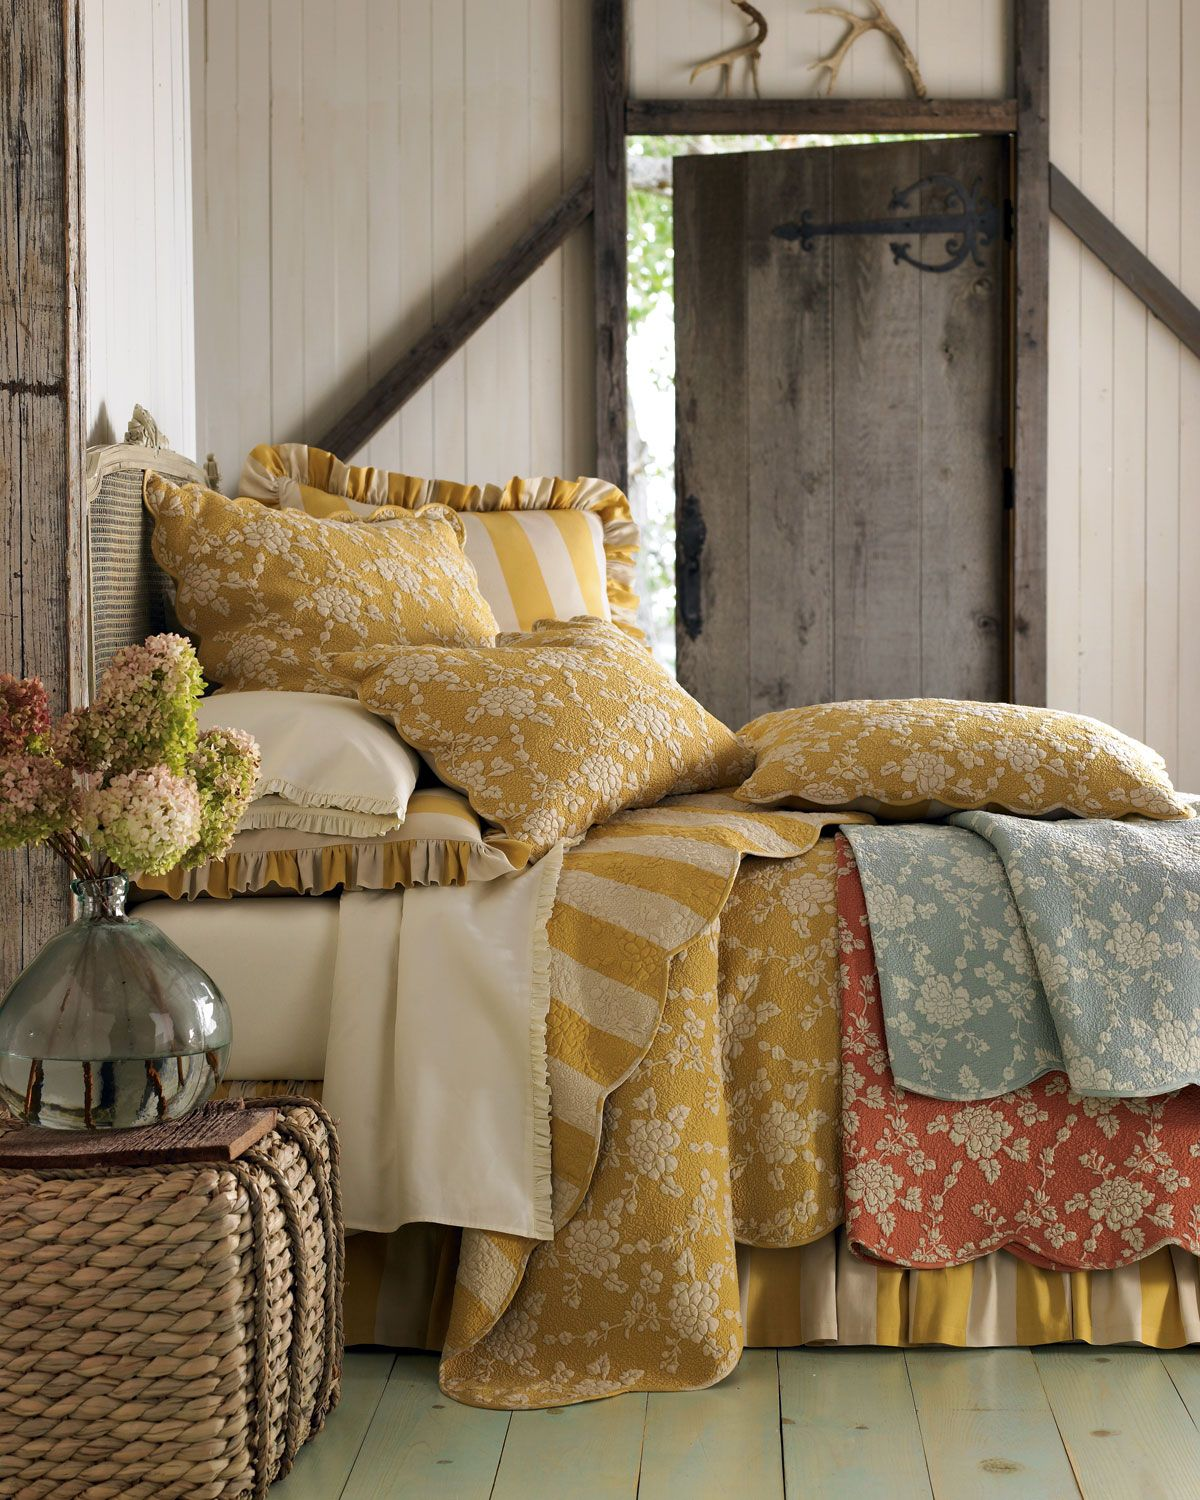 Pine Cone Hill Madeline Bedding Bed design, Country